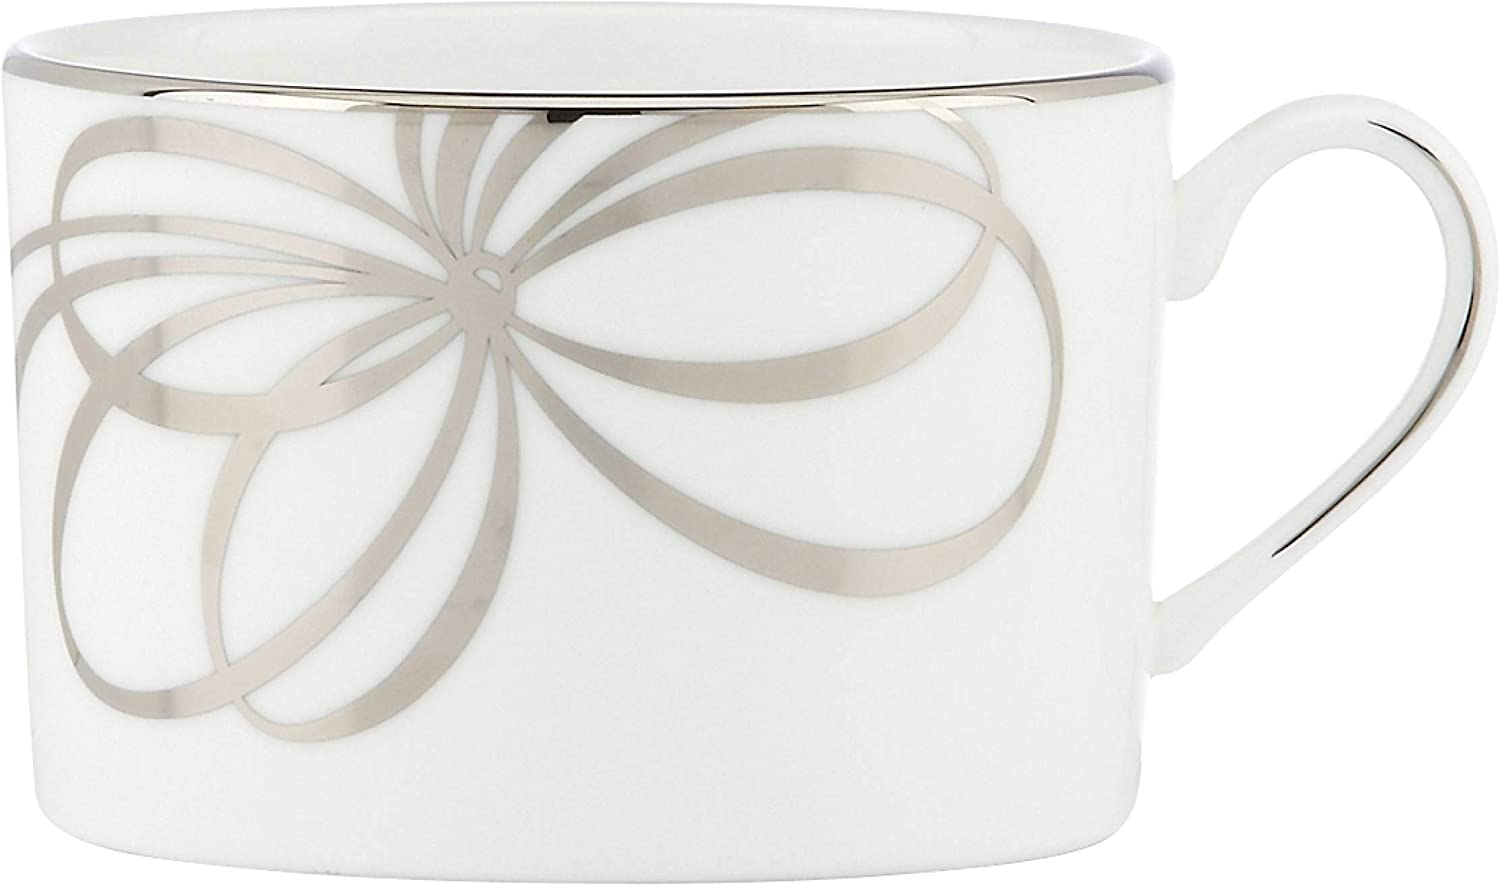 Kate Spade Max 58% OFF Belle Boulevard National uniform free shipping Cup LB 0.40 White